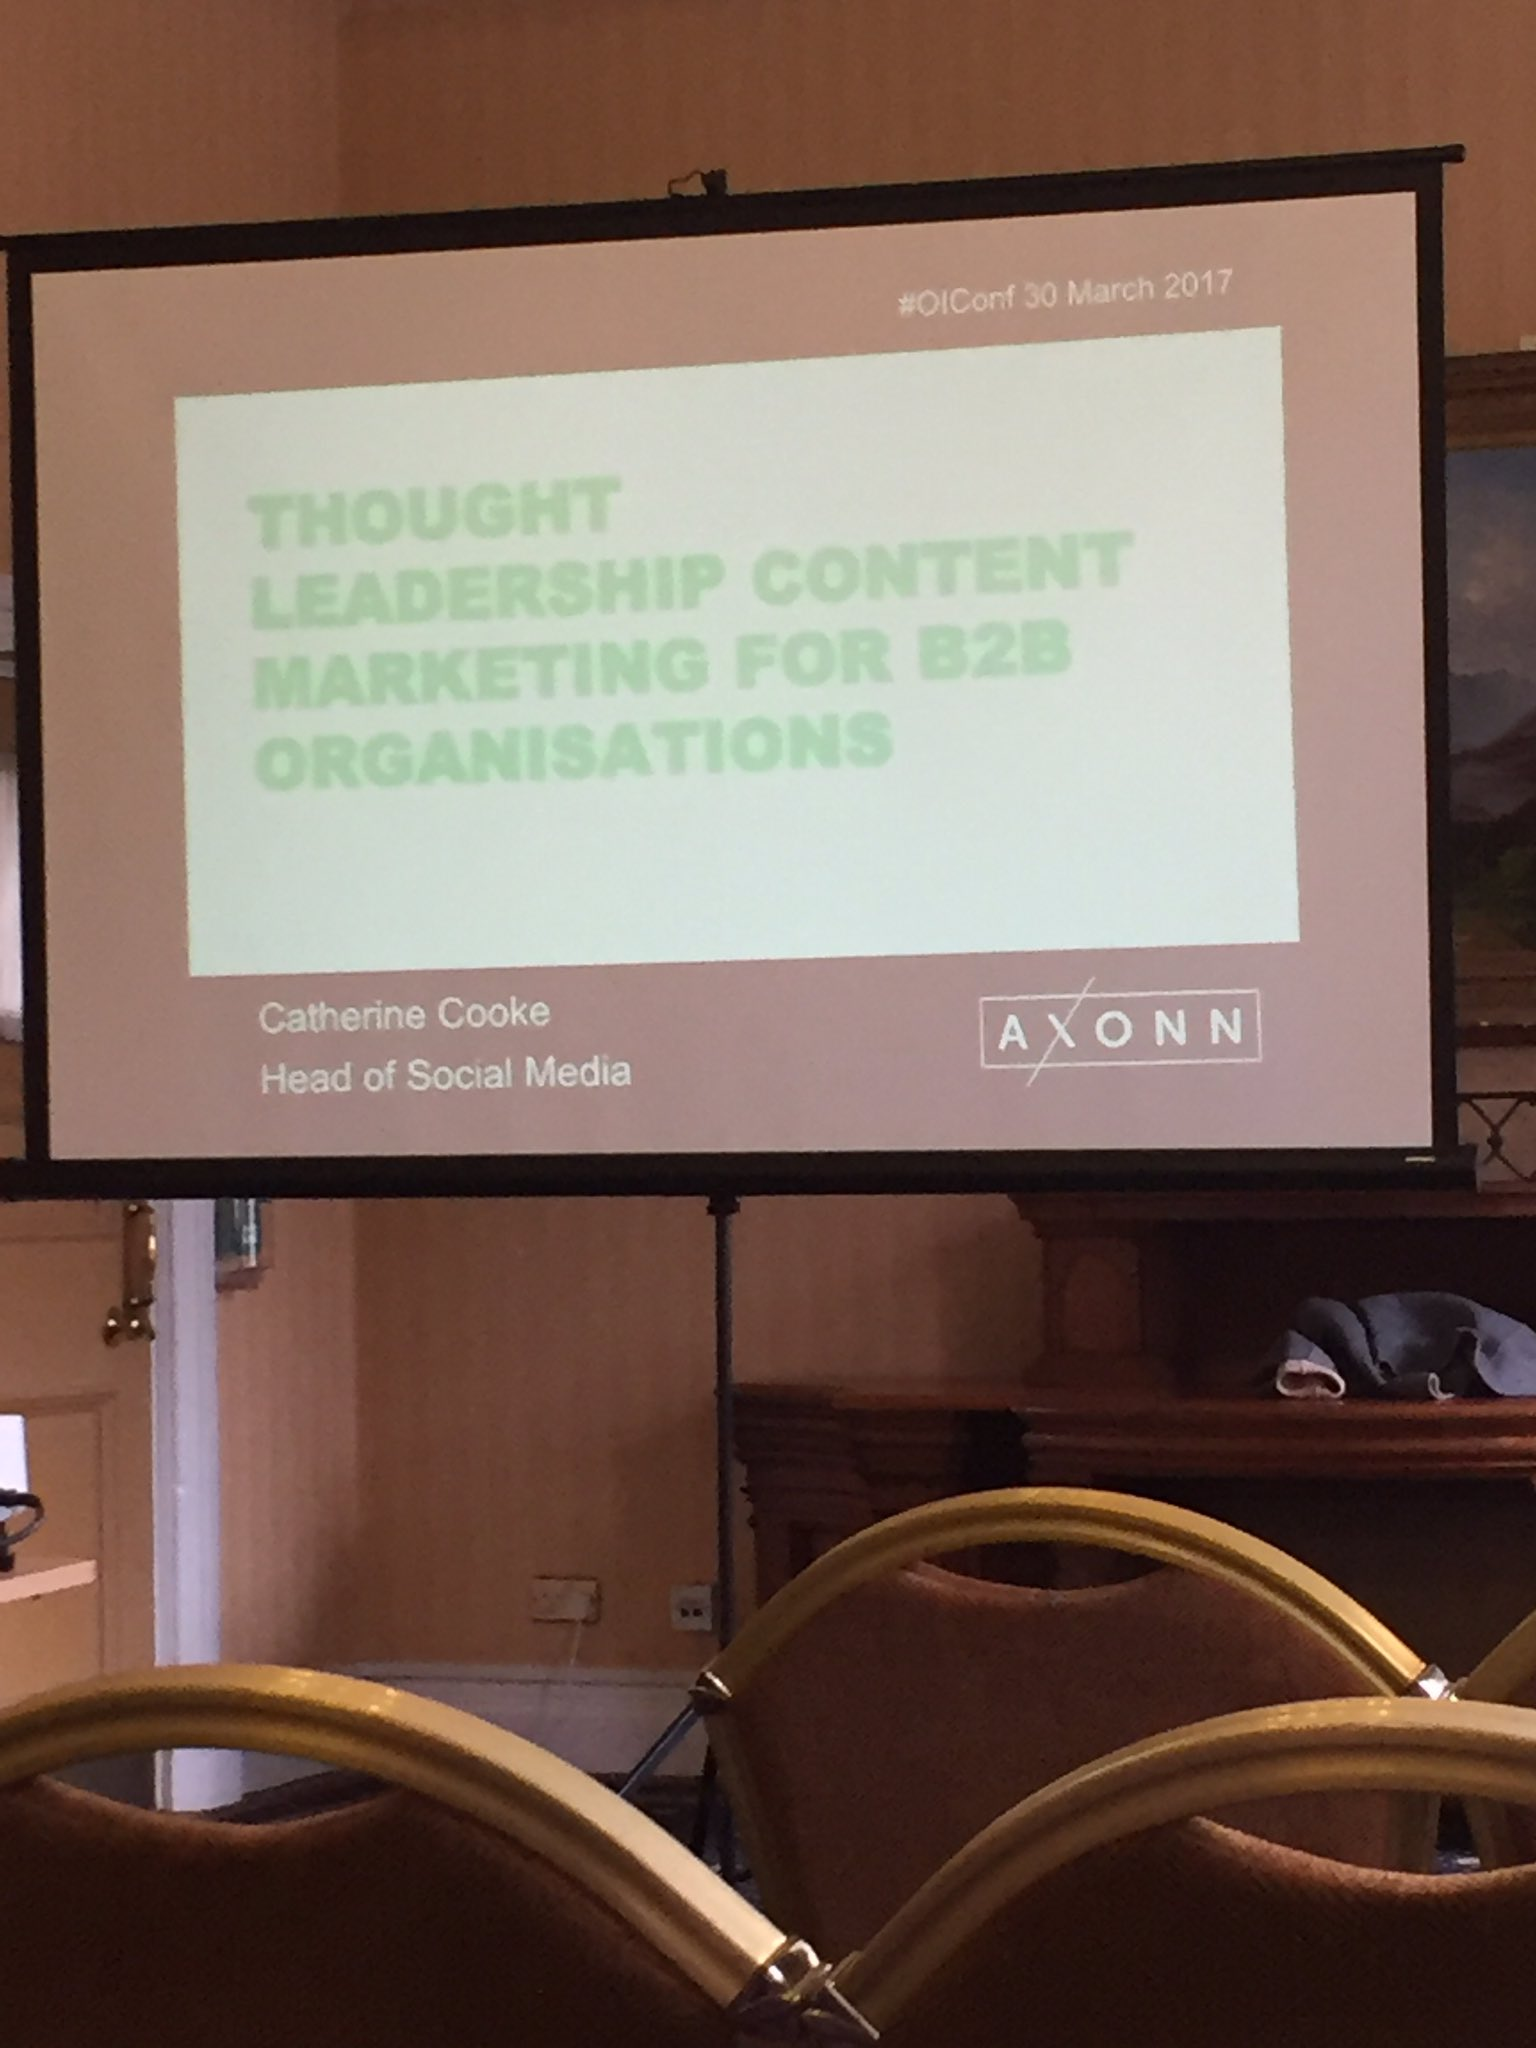 At the #OiConf today. First seminar of the day - thought leadership for B2B content by @AxonnMedia #marketing #DigitalMarketing https://t.co/T45lhr0r93